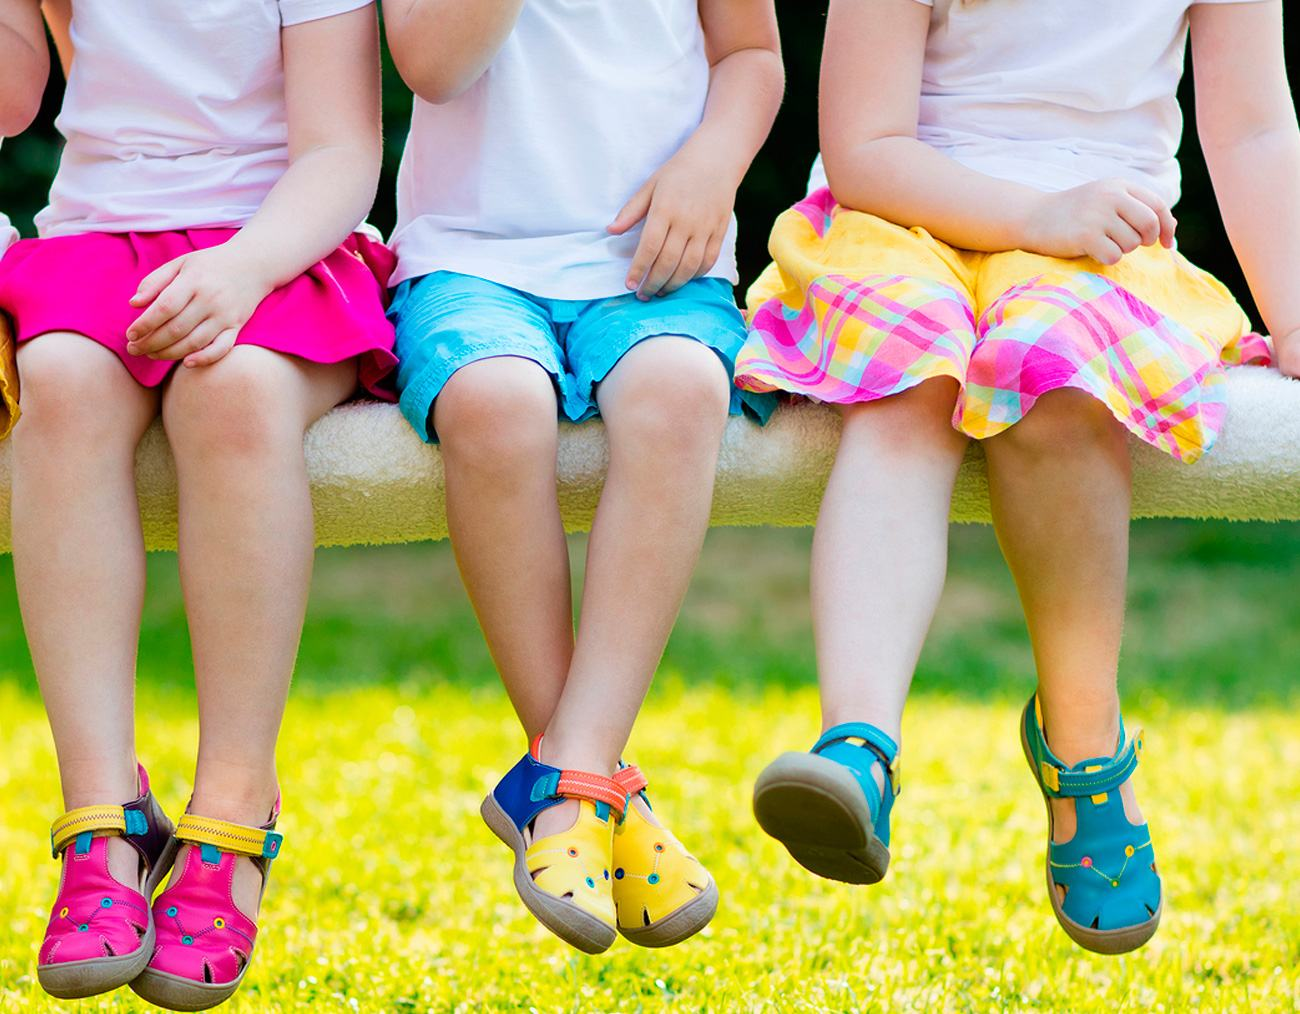 Should Children Have Shoes On When Learning To Walk